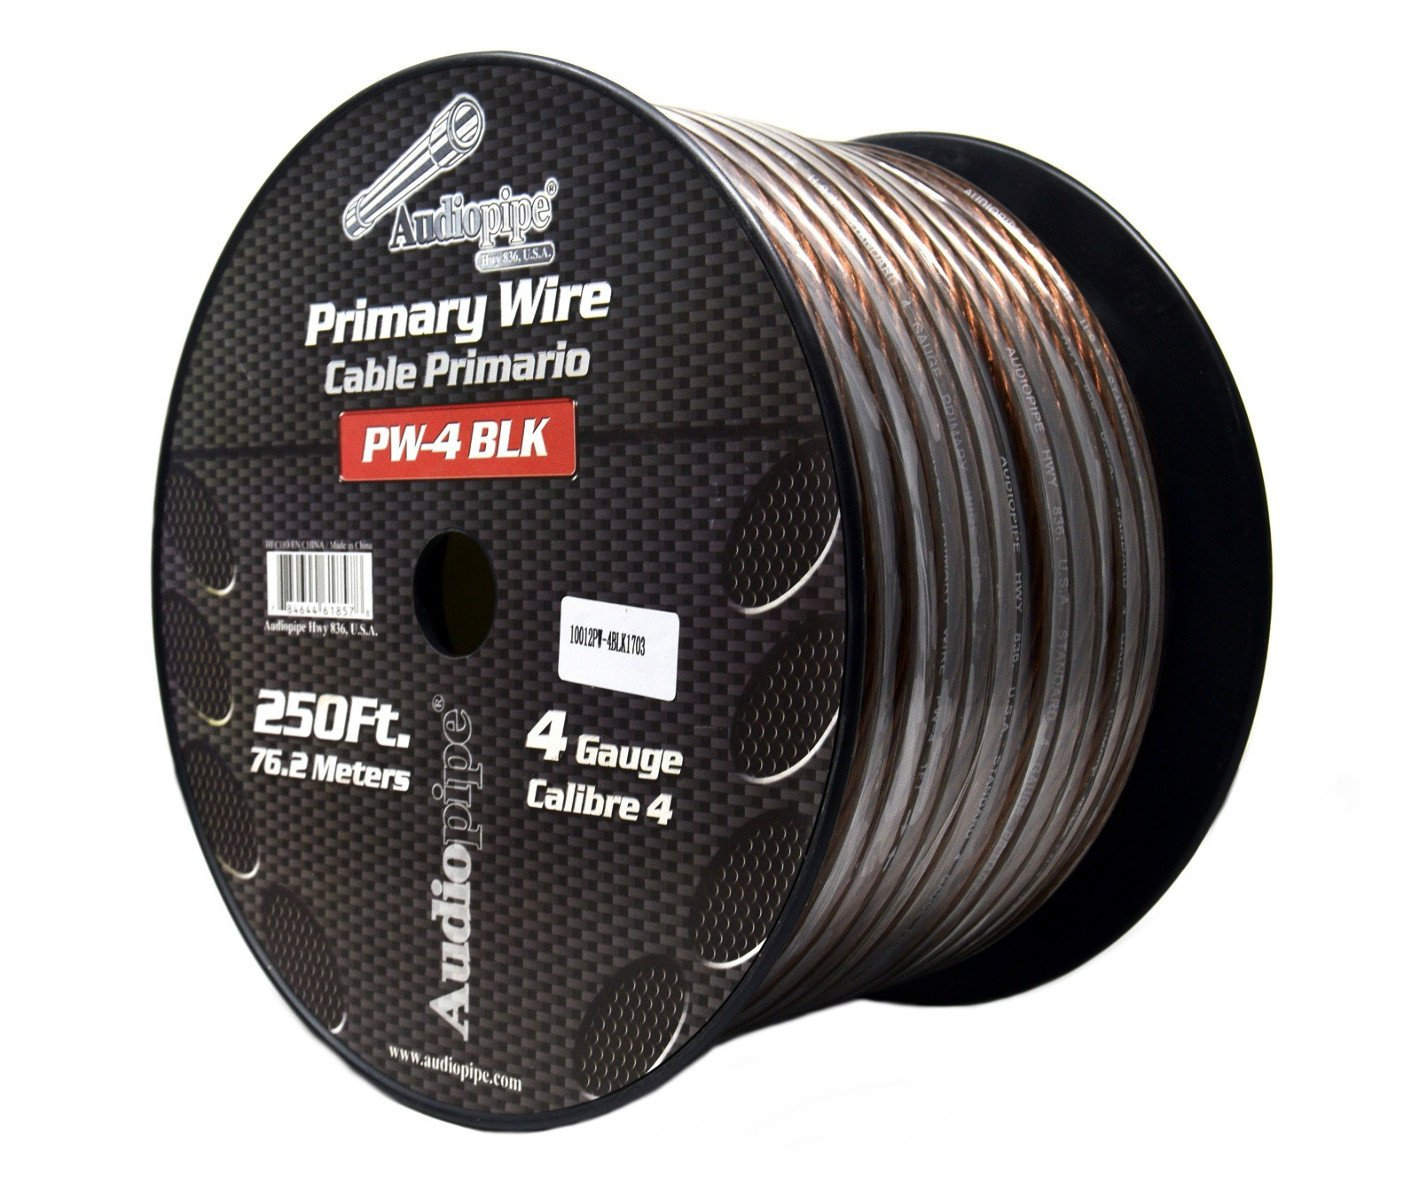 4 GA Black Power Wire Primary Ground 250FT Copper Mix Cable CAR Audio Amplifier by Audiopipe